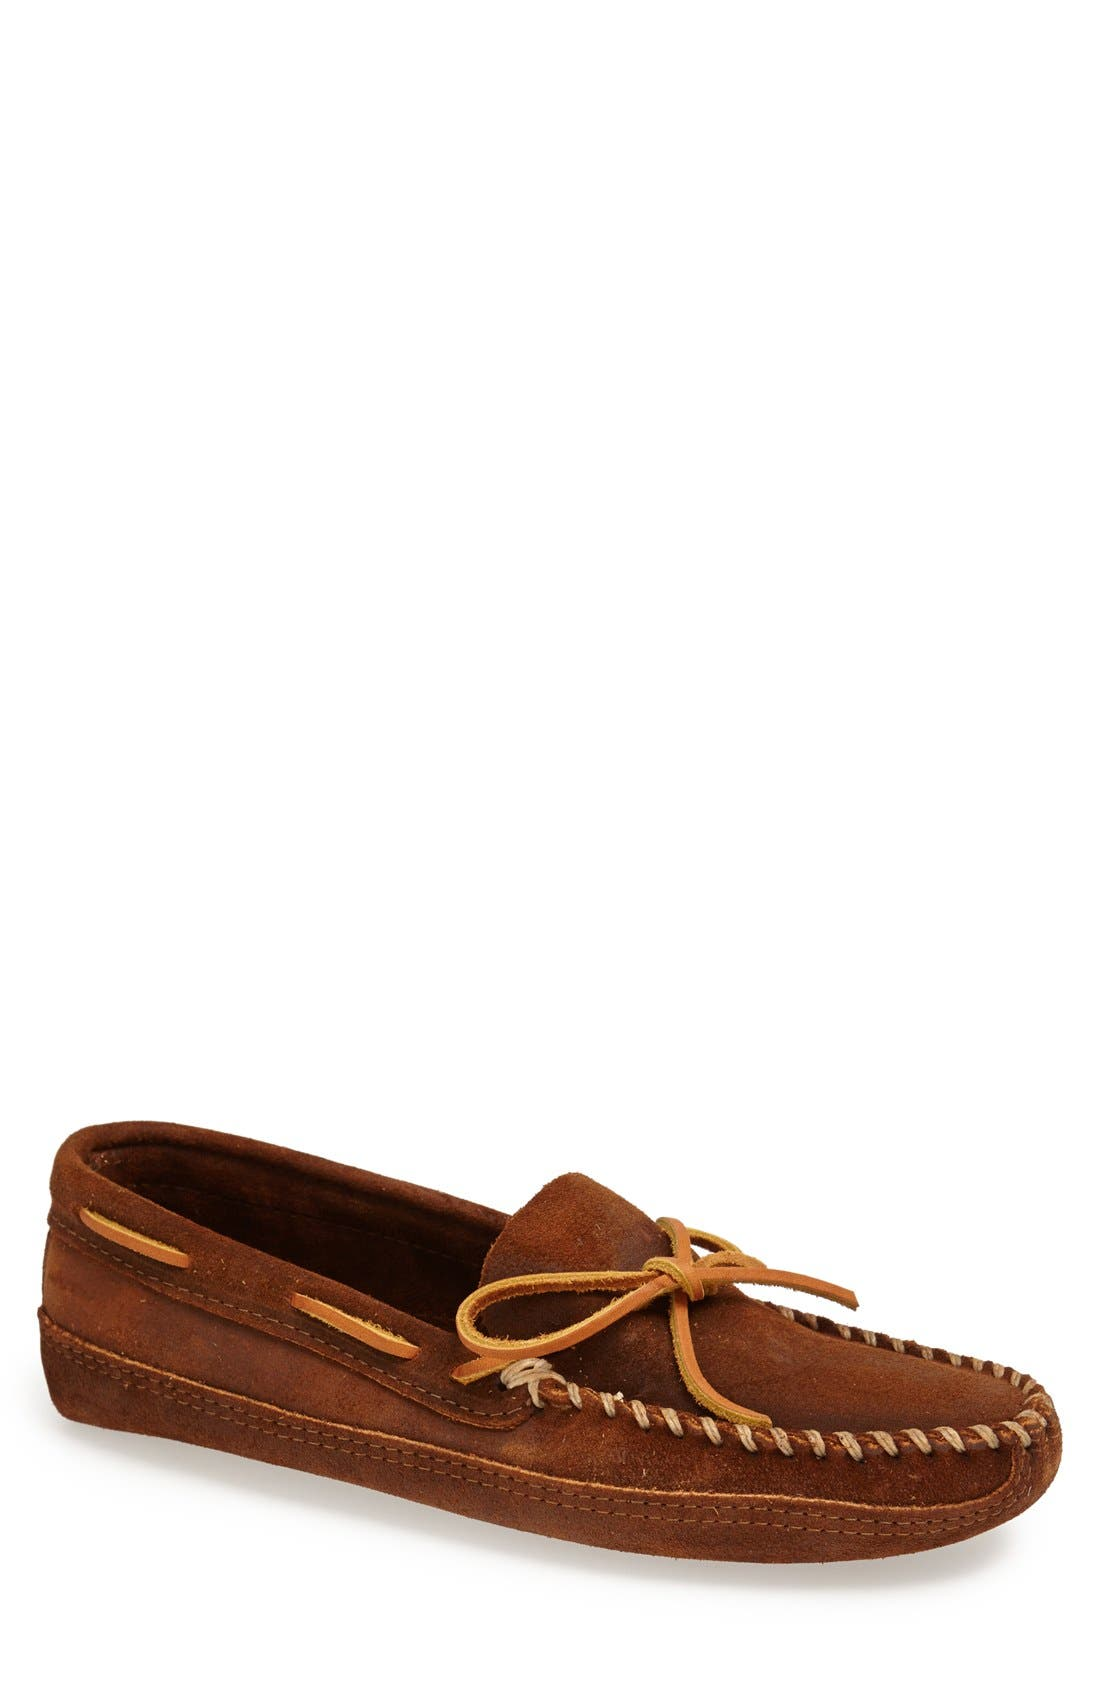 Minnetonka Suede Sole Moccasin